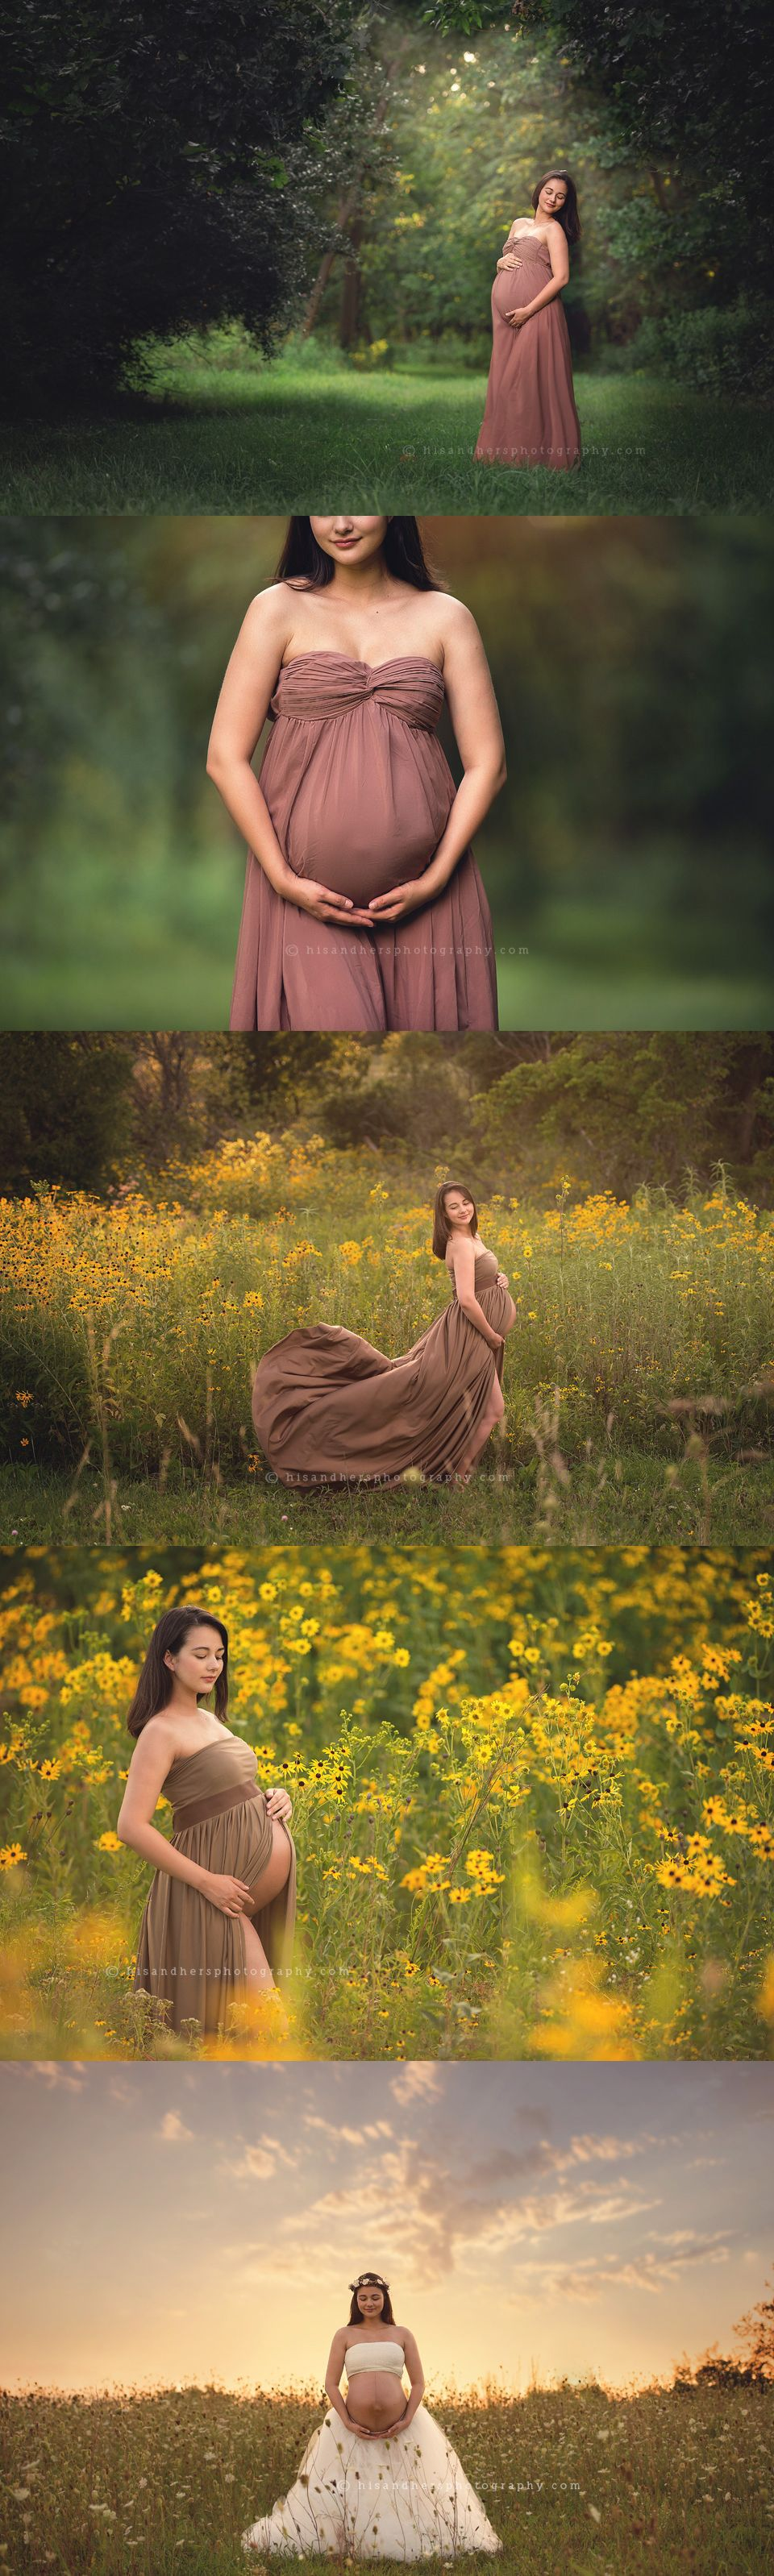 iowa maternity twin twins pregnancy photographer photography expecting mother pictures